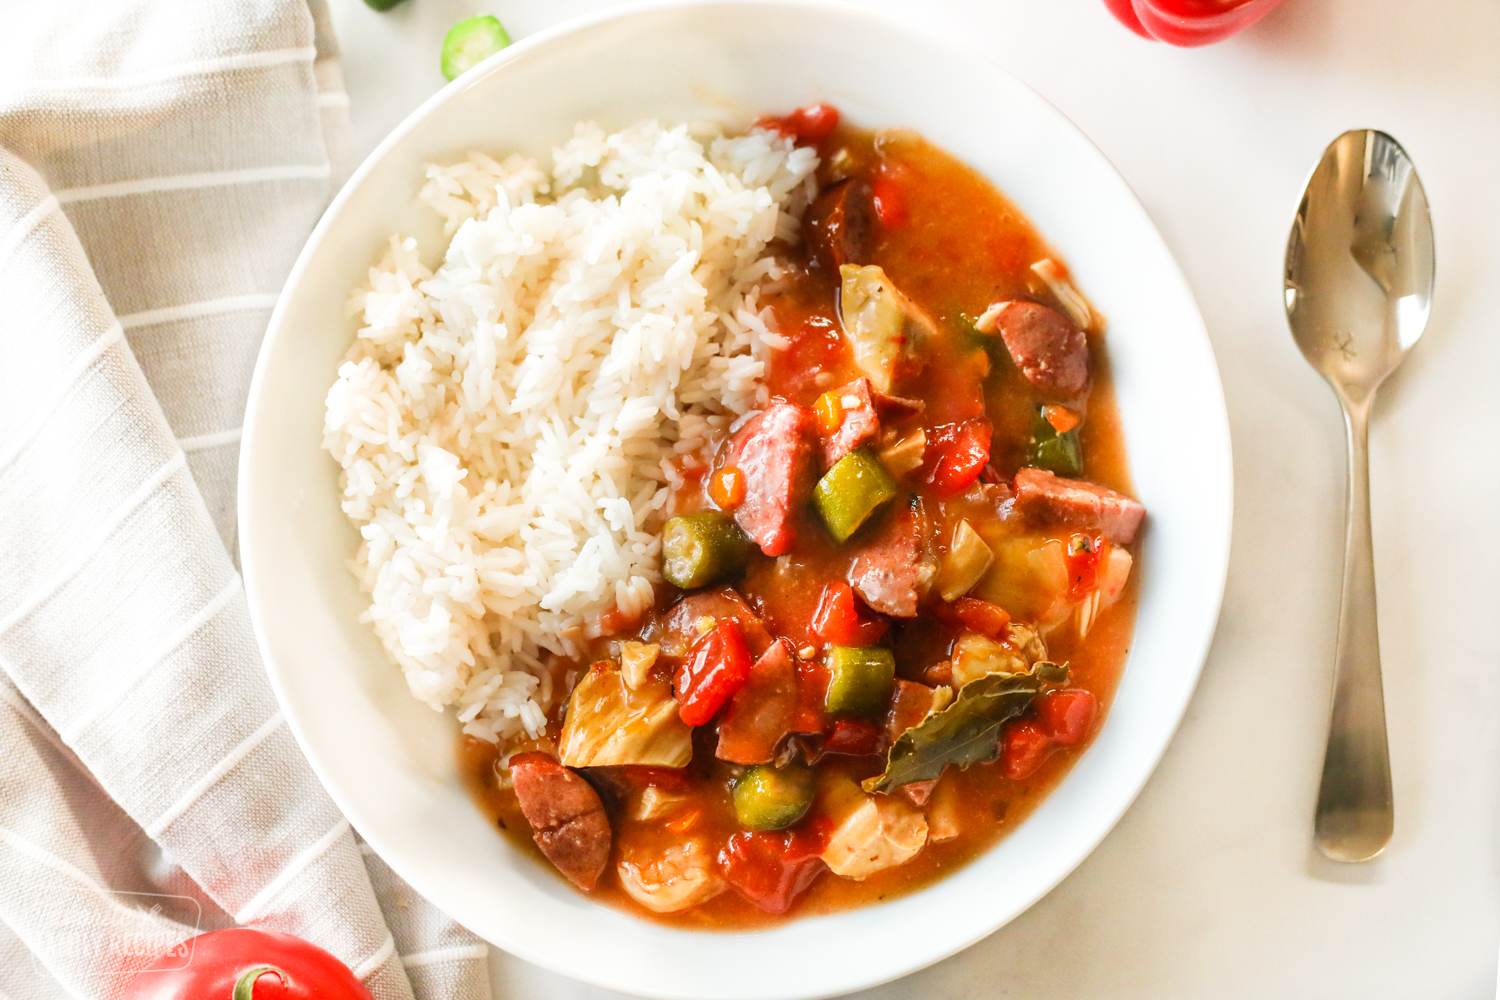 A bowl of Instant Pot Gumbo with chicken, sausage, shrimp, peppers, onion, and okra with rice on the side